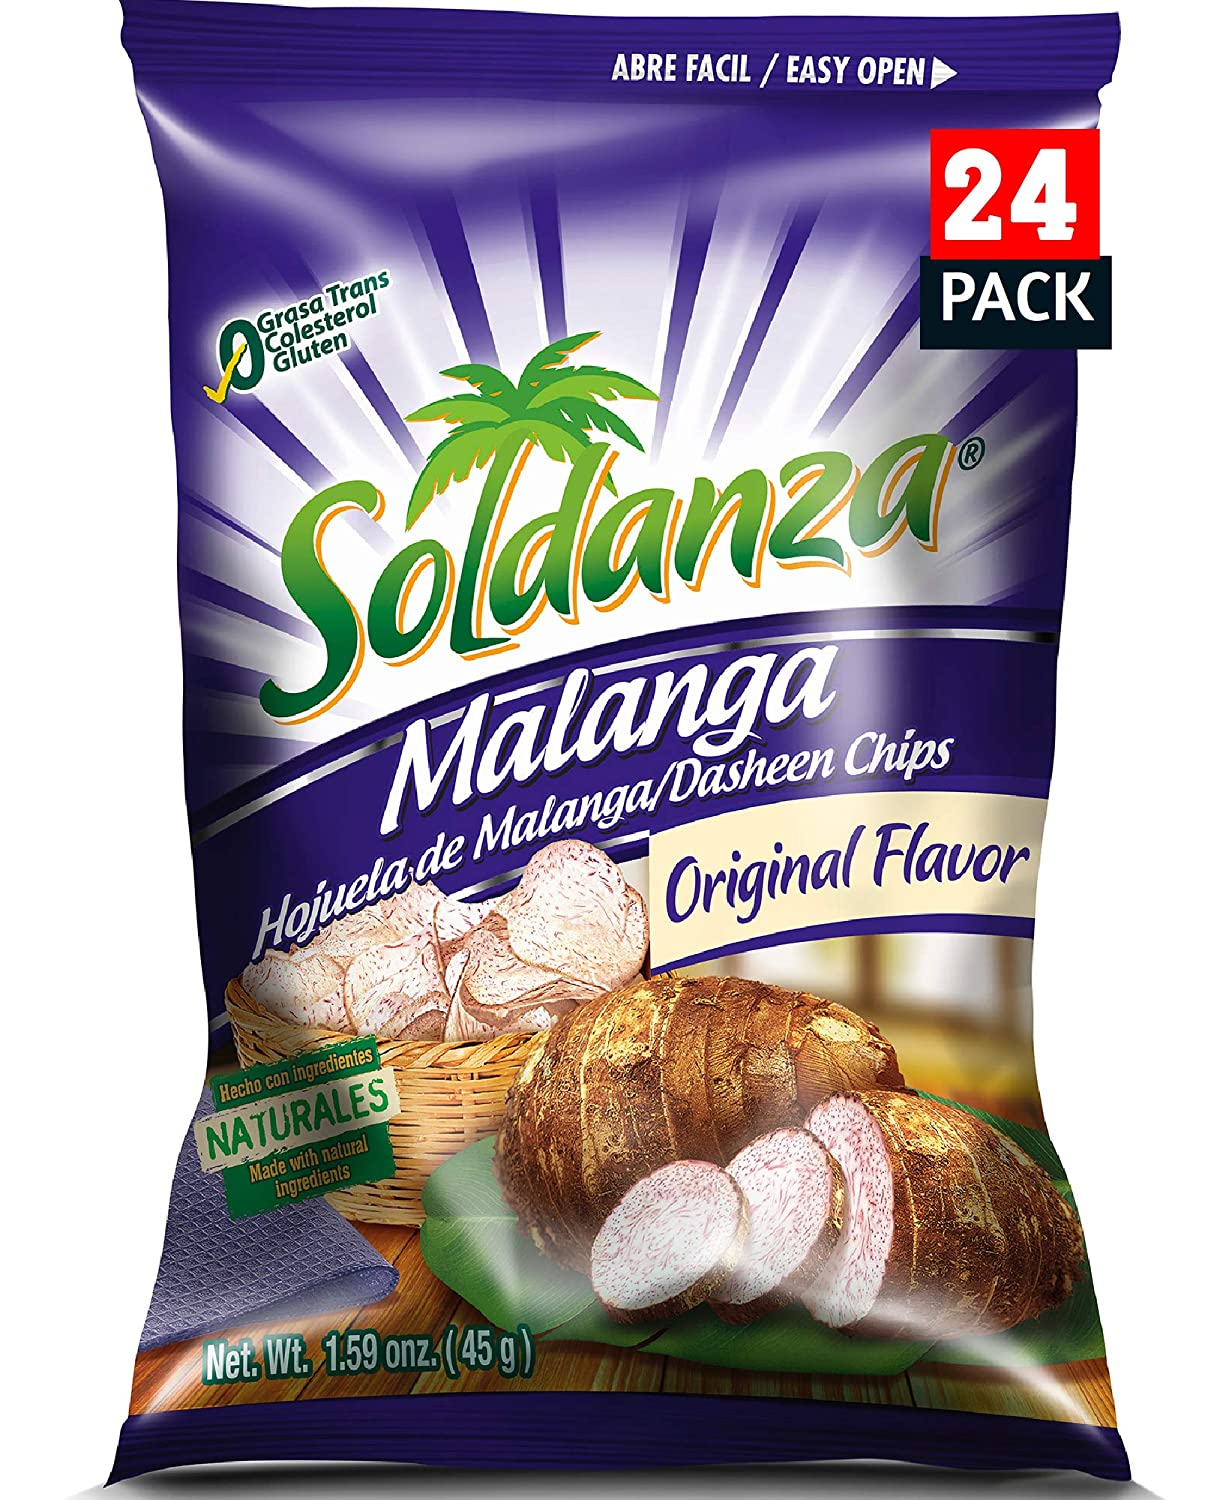 Soldanza Dasheen Chips 1.6 Ounce Pack Mala New Orleans Mall Price reduction All 24 Natural of